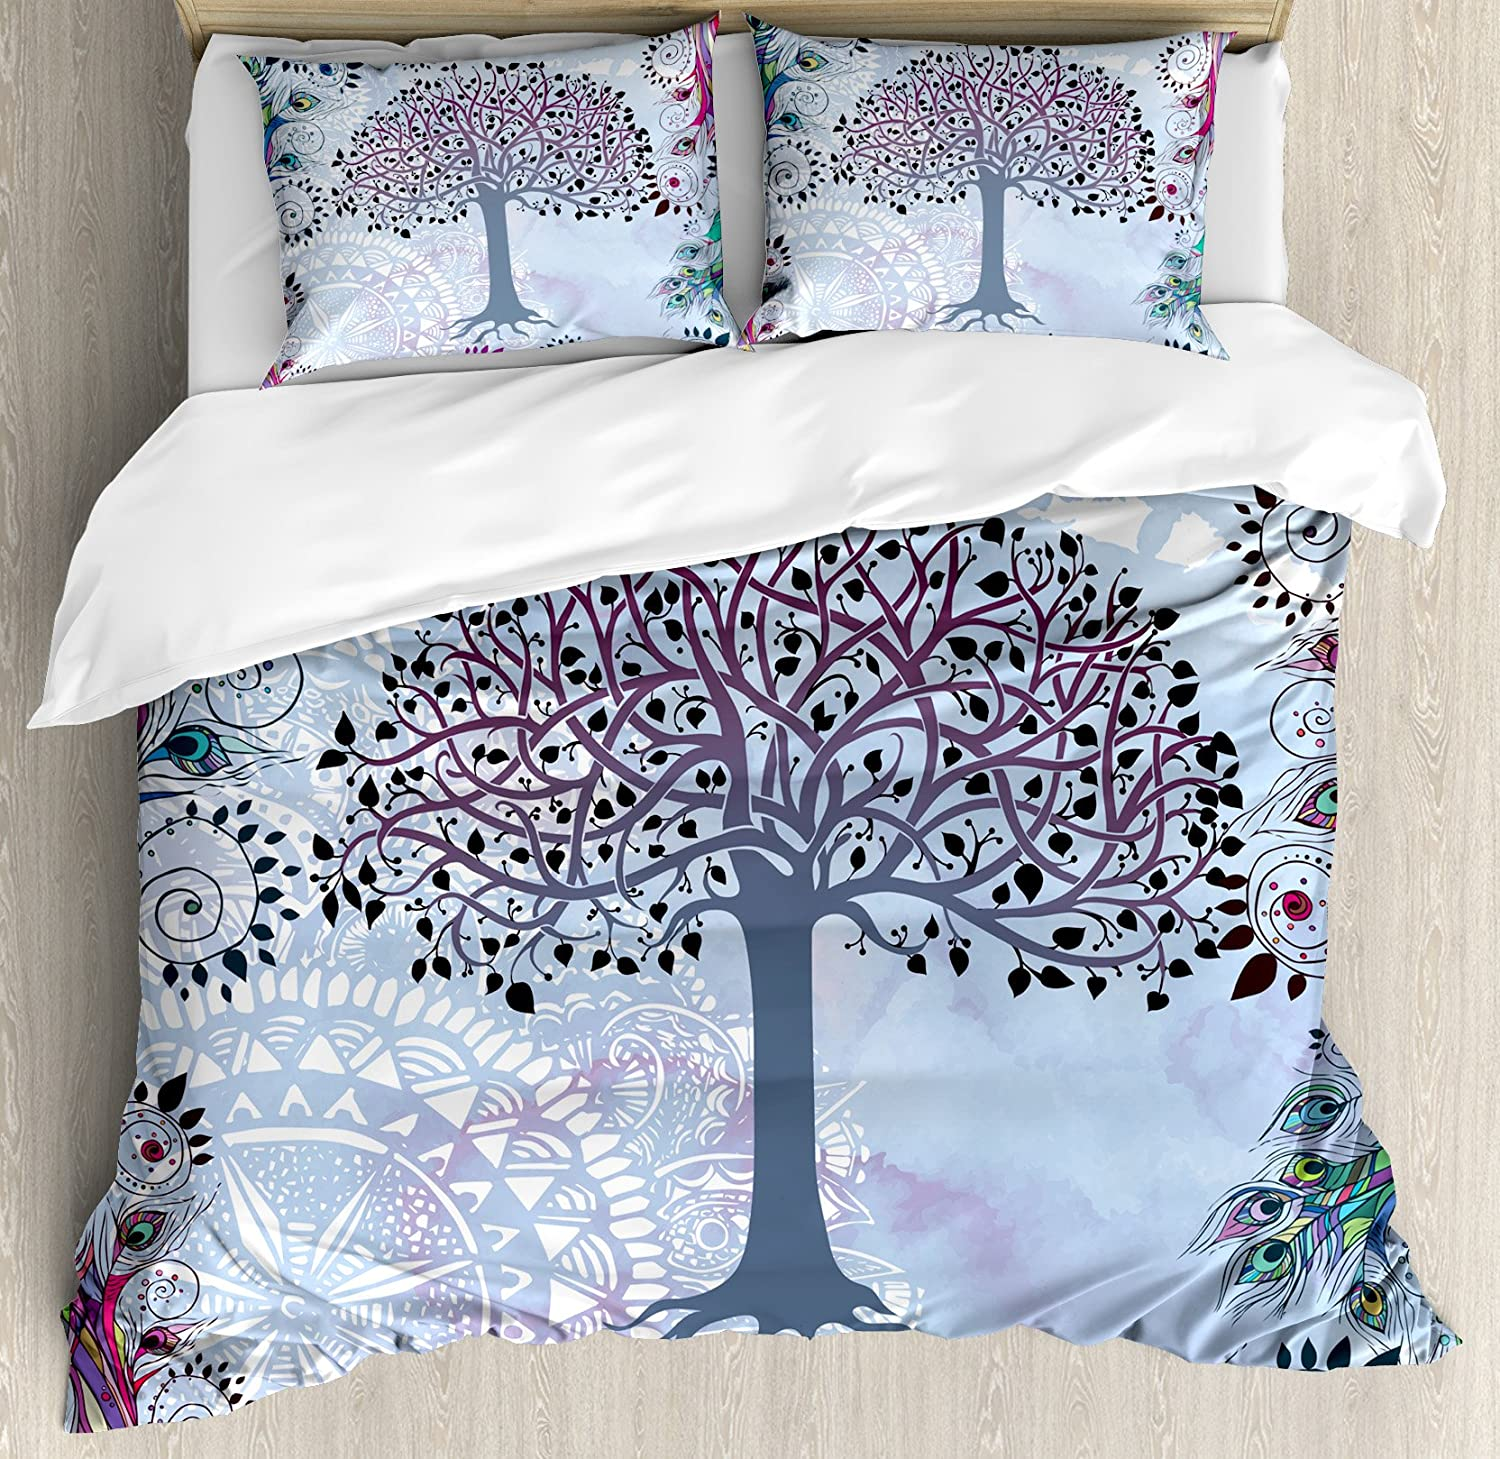 Merveilleux Ambesonne Nature Duvet Cover Set, Cute Tree Of Life Motif With Peacock  Feathers Tribal Vintage Primitive Nature Illustration, 3 Piece Bedding Set  With ...